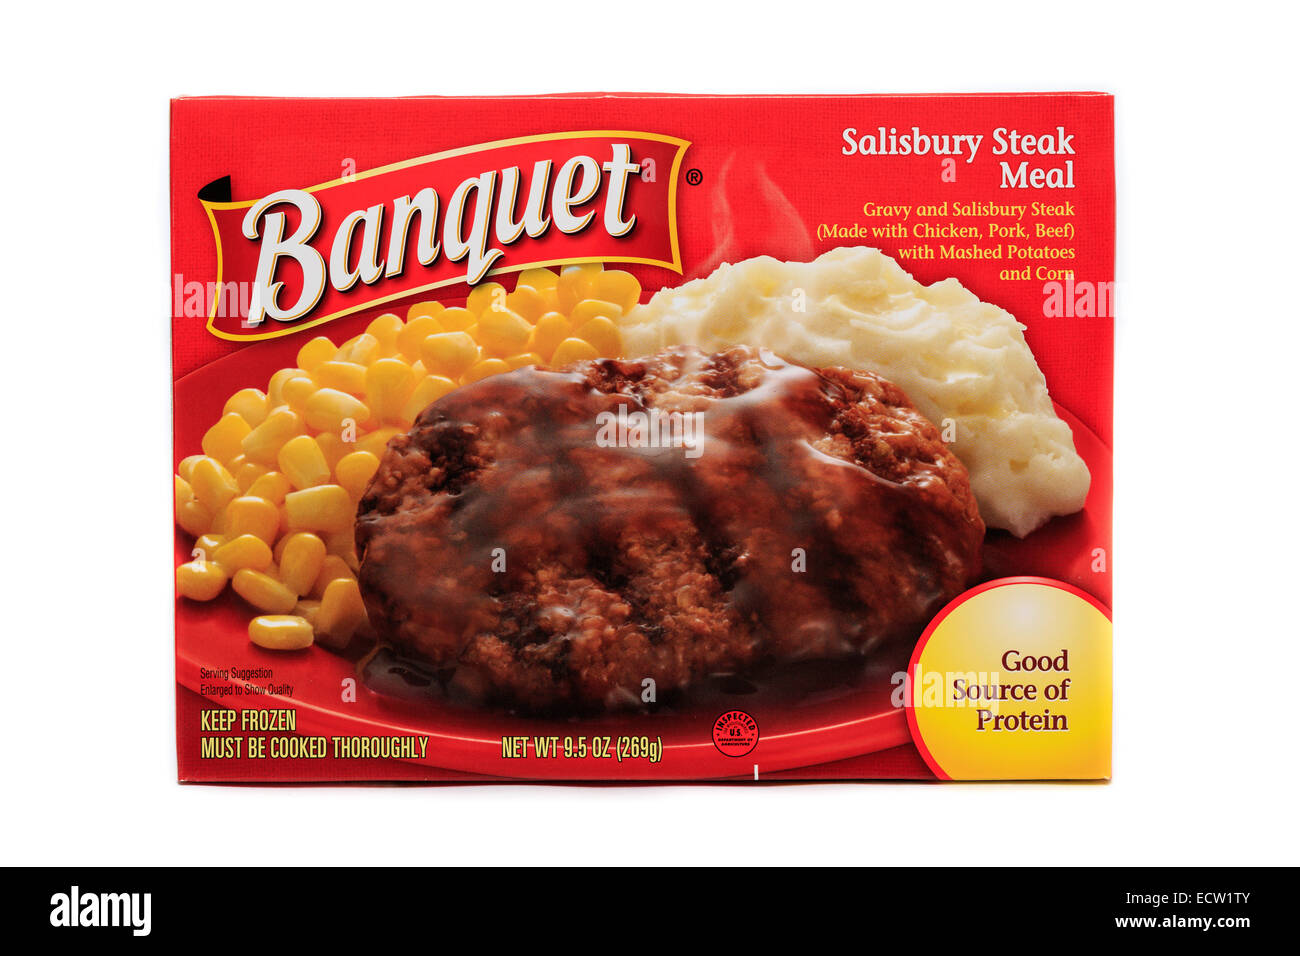 Banquet Salisbury Steak Ready Meal - Stock Image